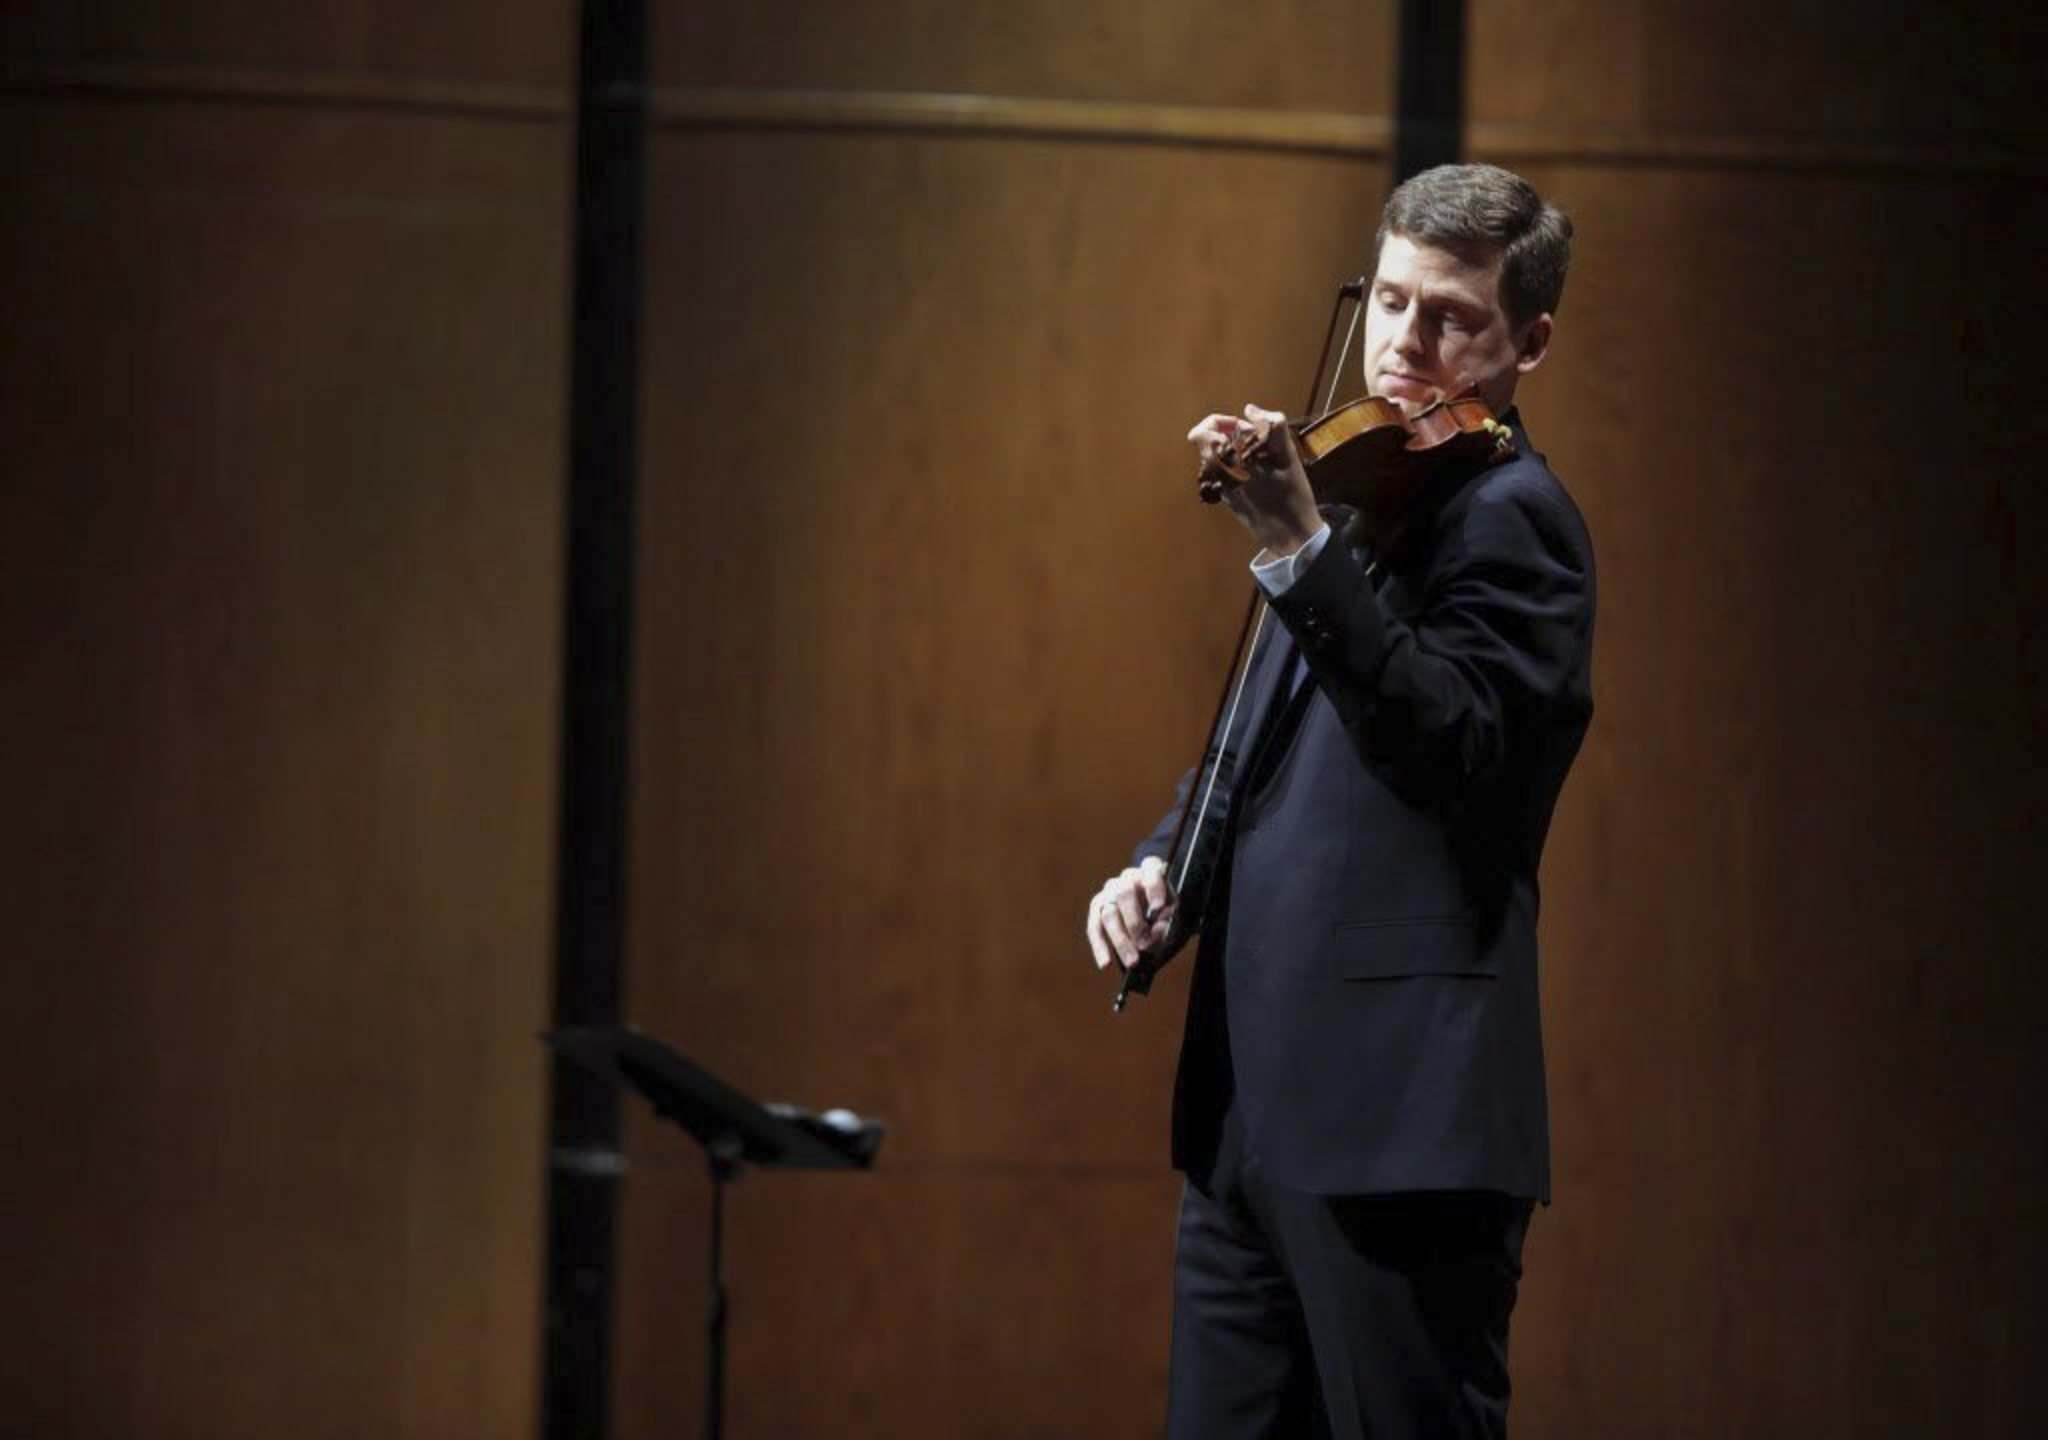 Bruce Bumstead / Brandon Sun files</p><p>Brandon-born violinist James Ehnes brought his sterling artistry to Vivaldi's The Four Seasons.</p></p>